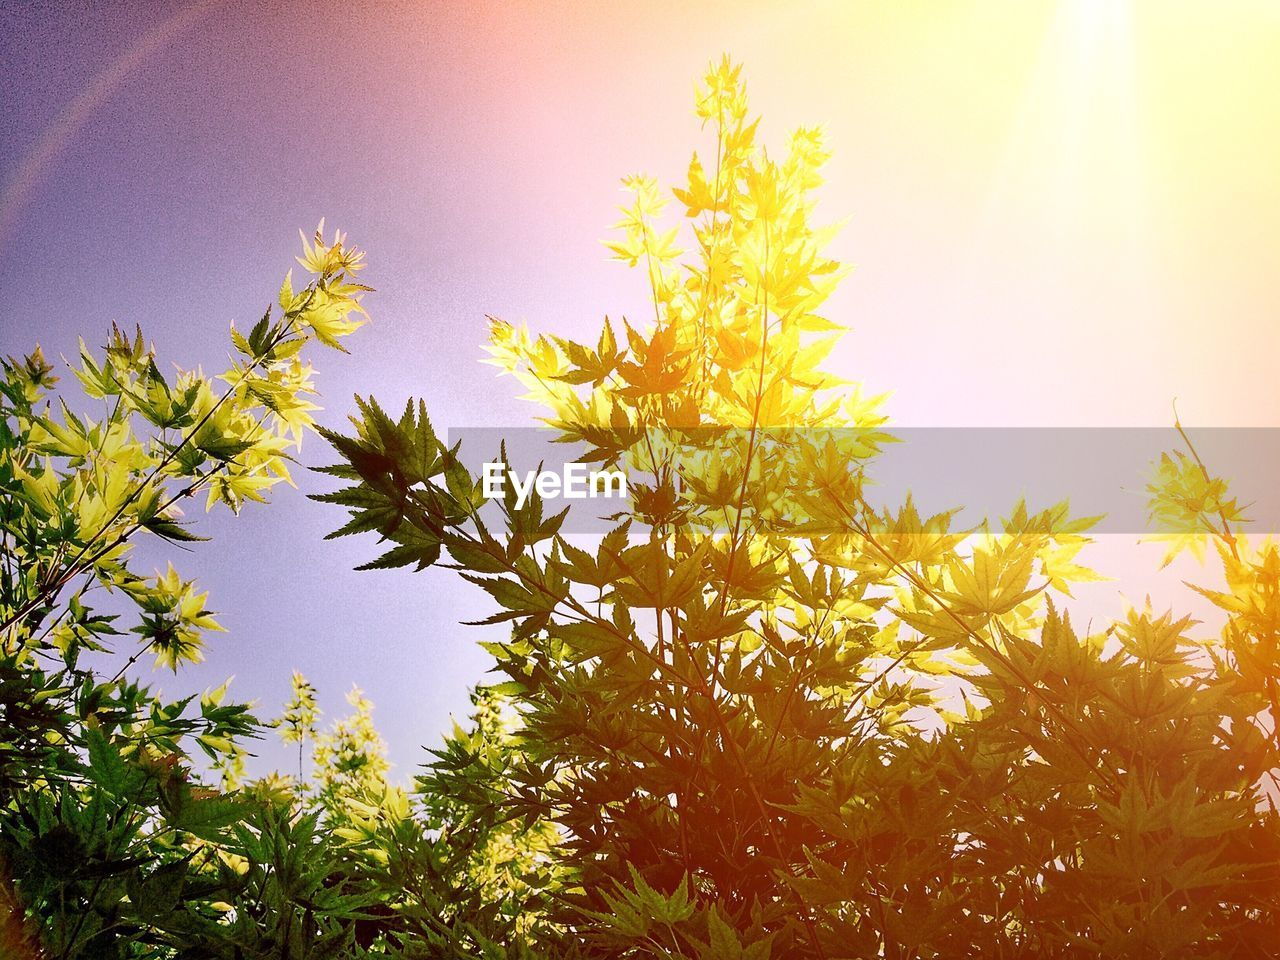 nature, growth, beauty in nature, lens flare, sky, clear sky, flower, sun, sunlight, plant, low angle view, outdoors, no people, tree, yellow, tranquility, day, freshness, sunshine, close-up